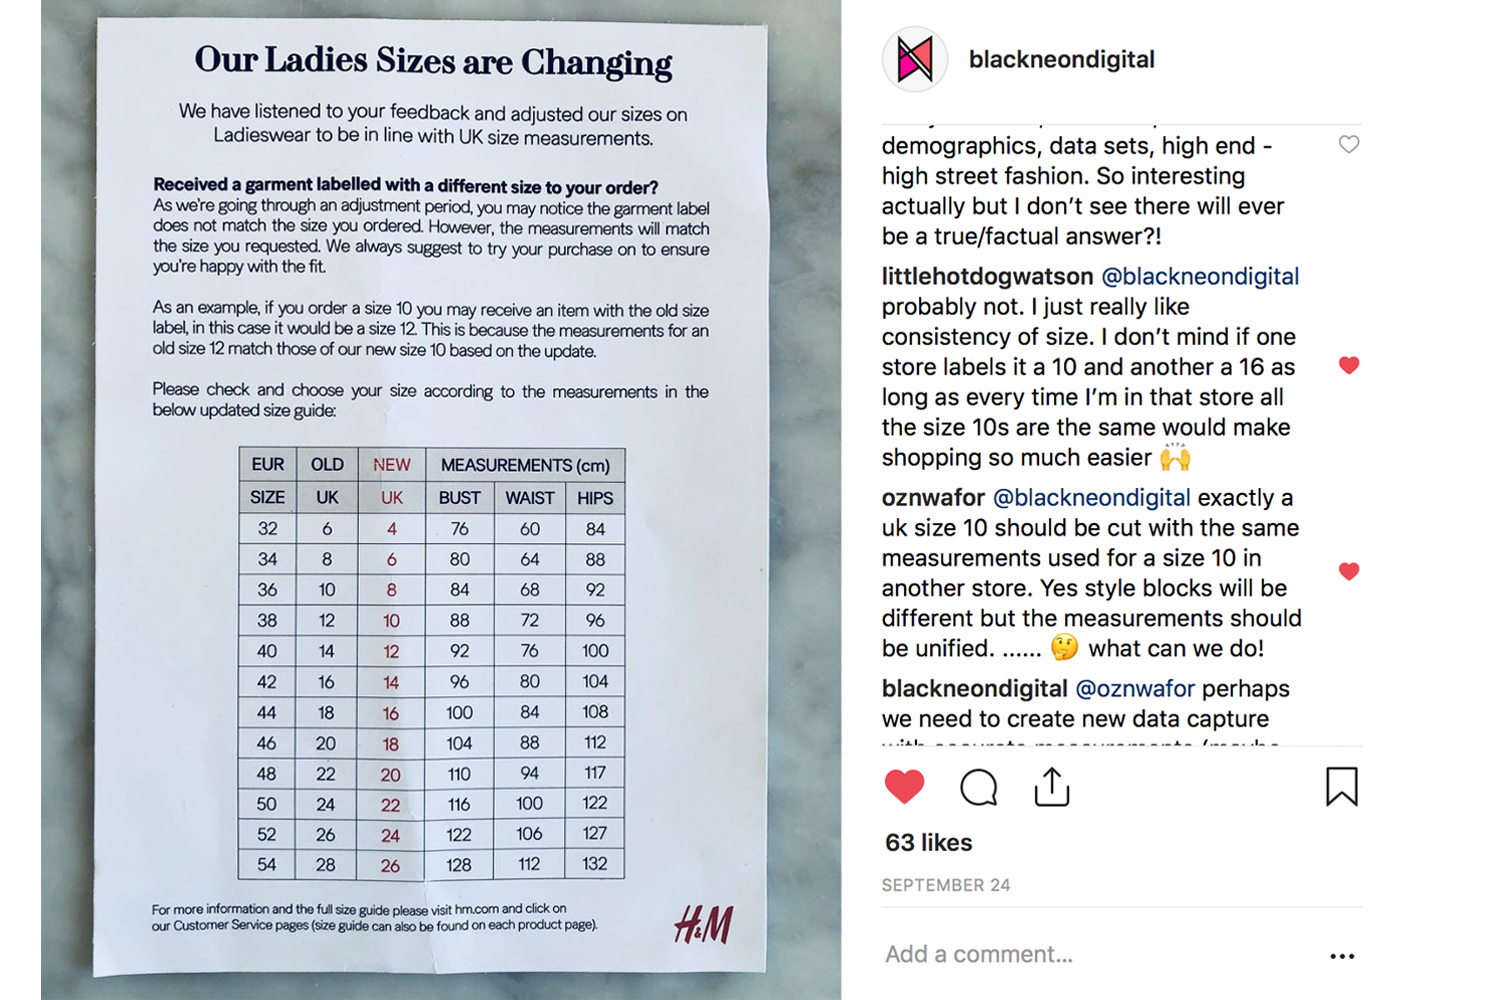 H&M size set changes in the UK